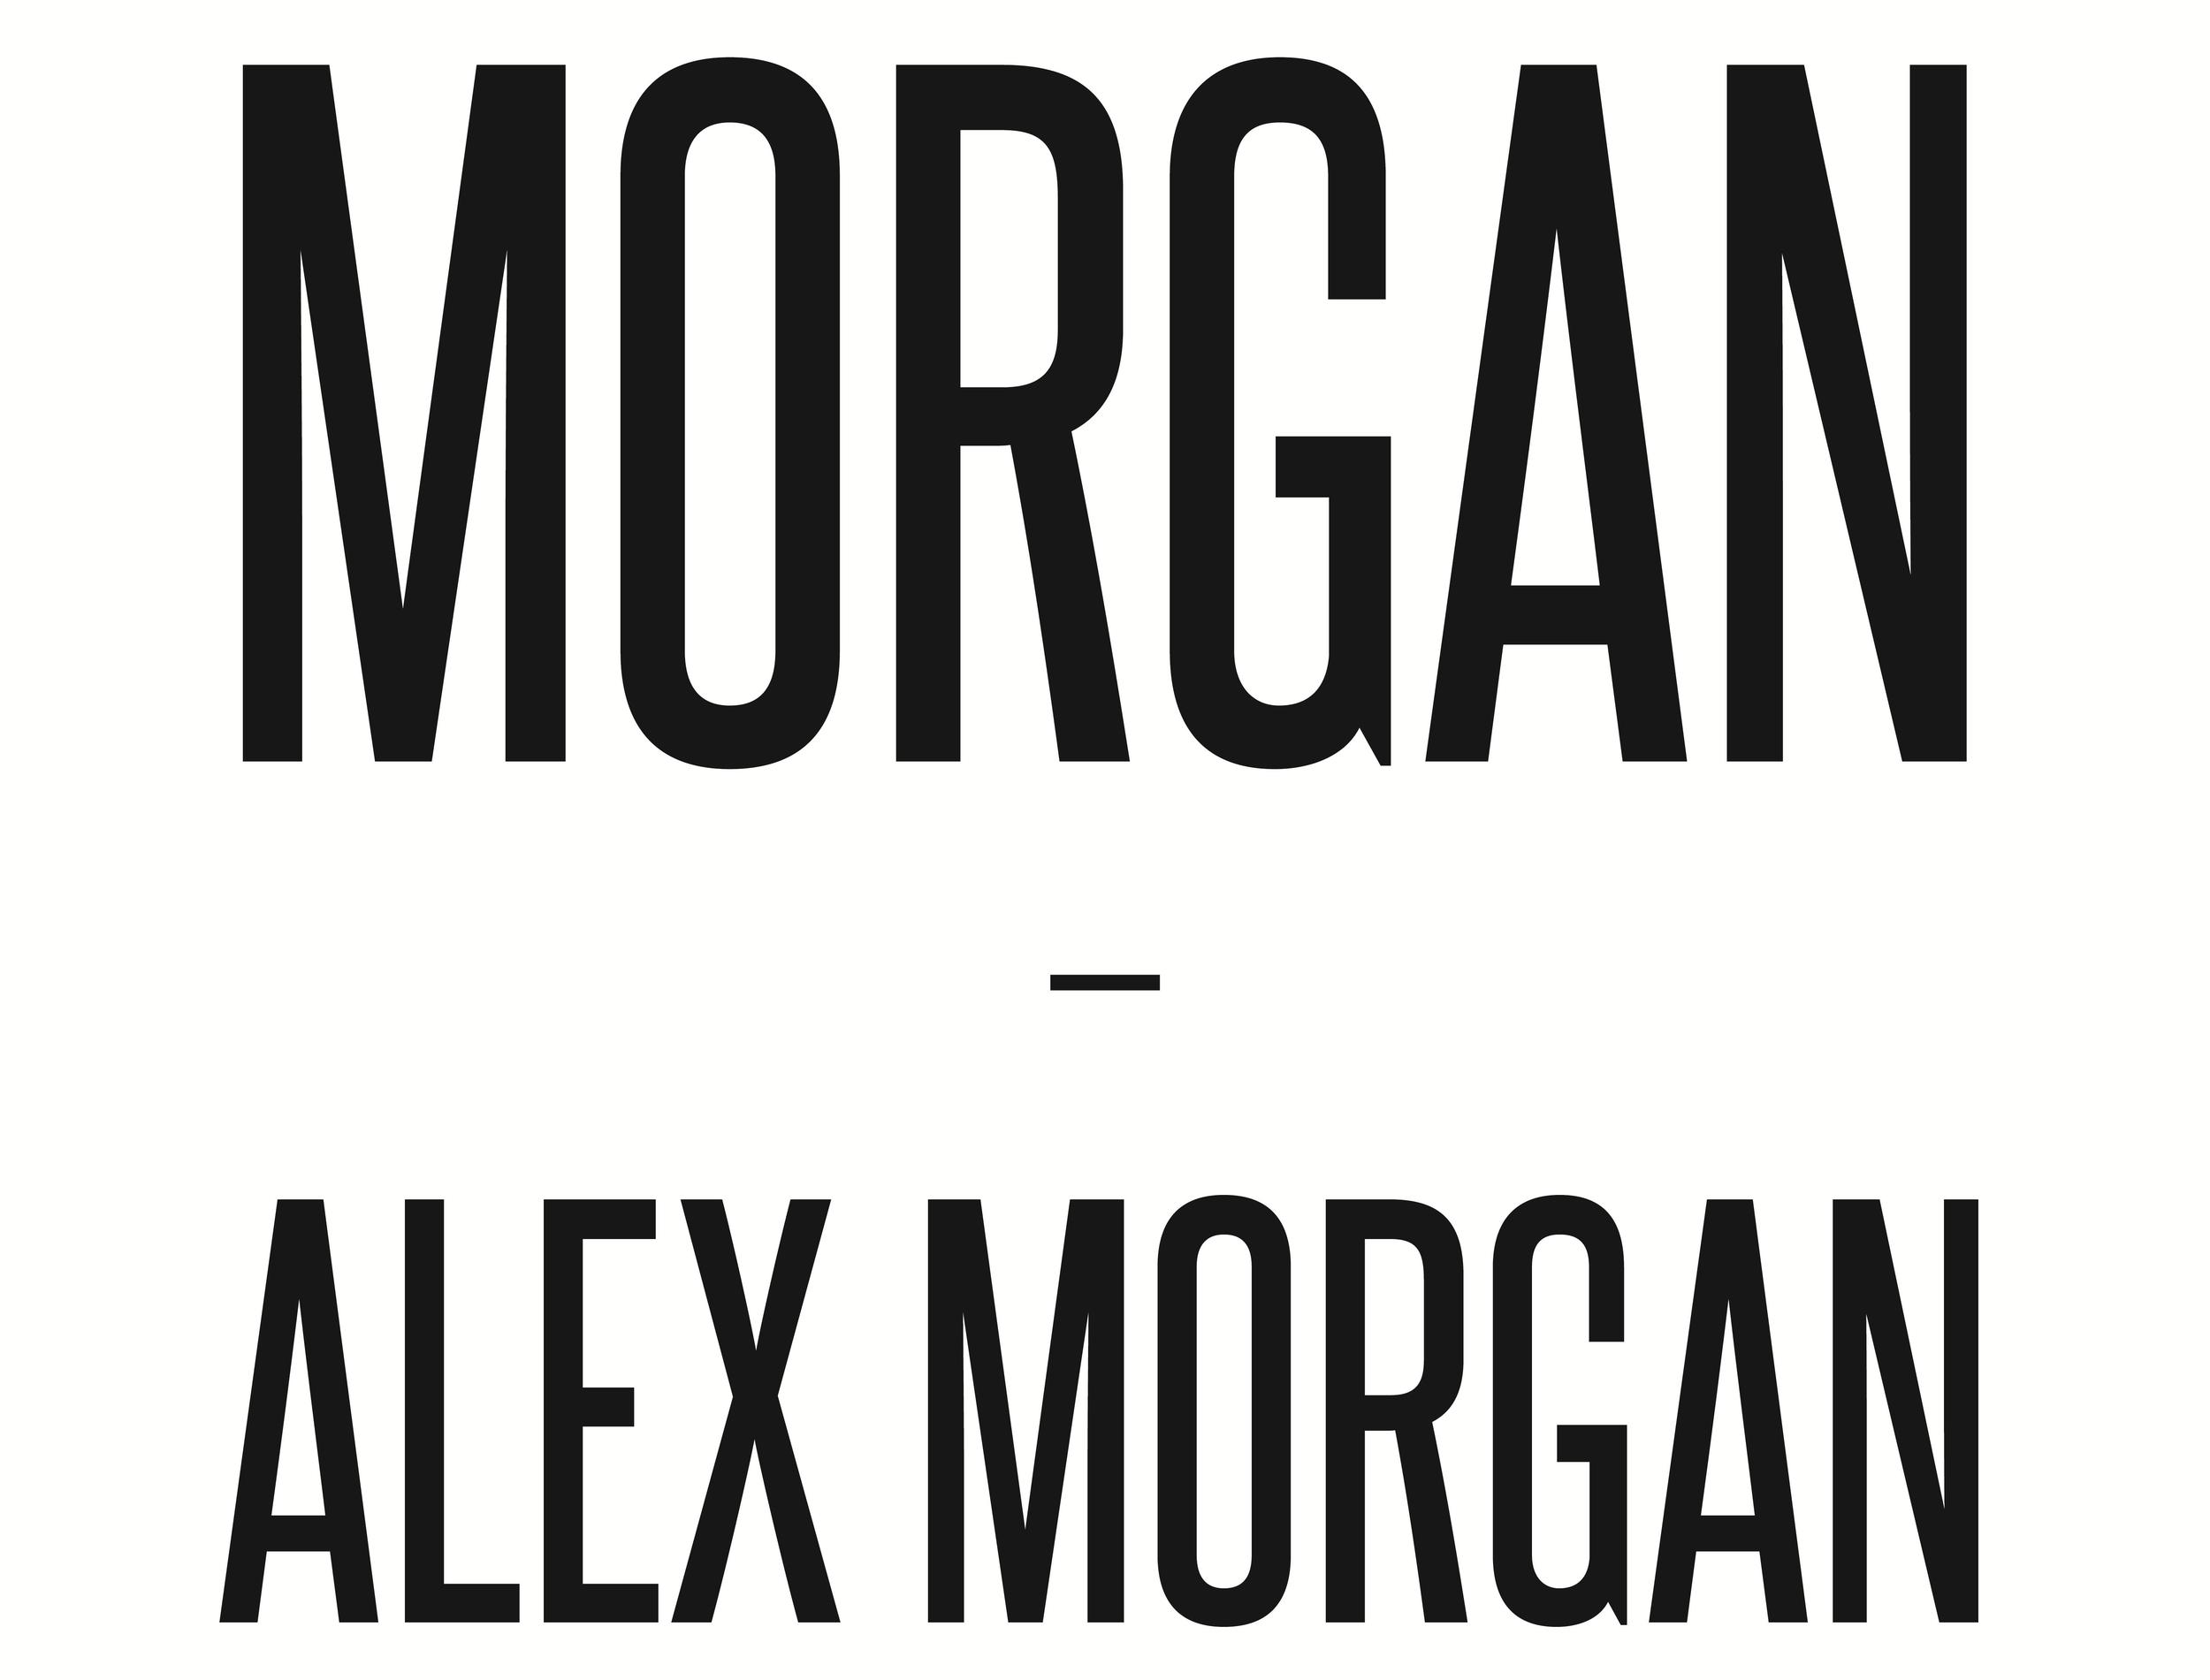 A range of fresh designs and gear inspired by the Alex Morgan Intrepid series by popular Australian author Chris Allen.